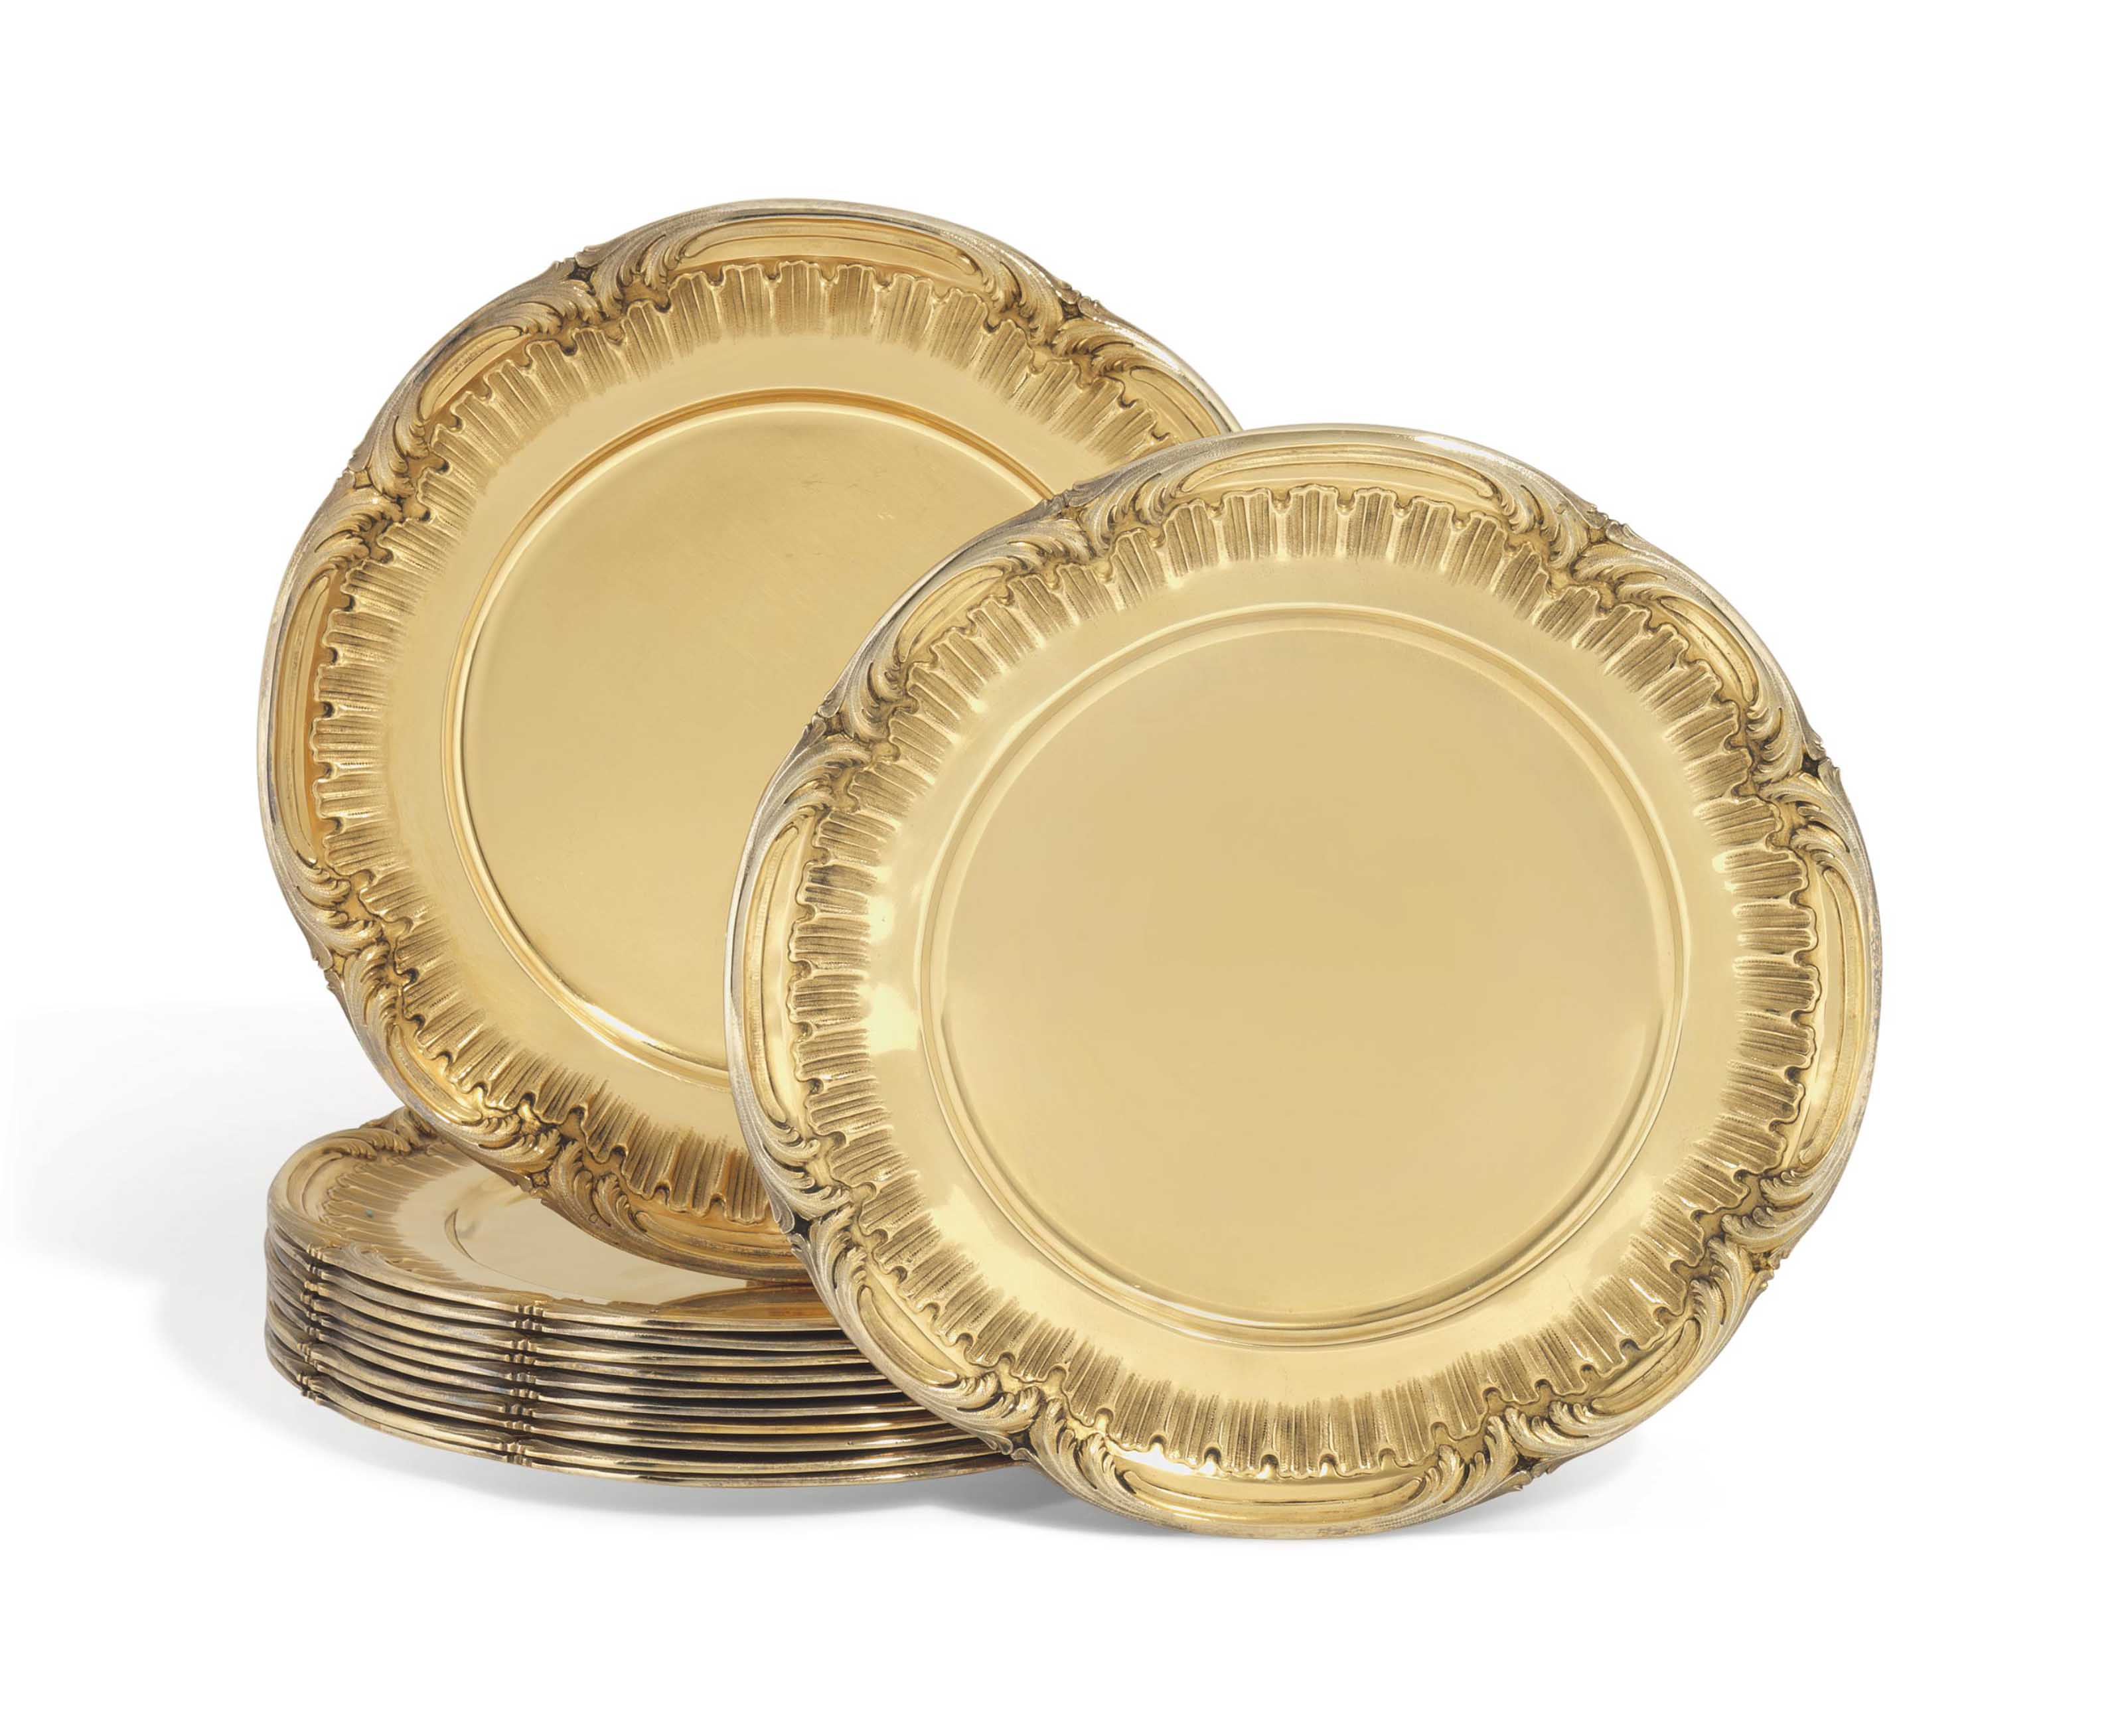 A FRENCH SET OF TWELVE SILVER-GILT UNDER-PLATES